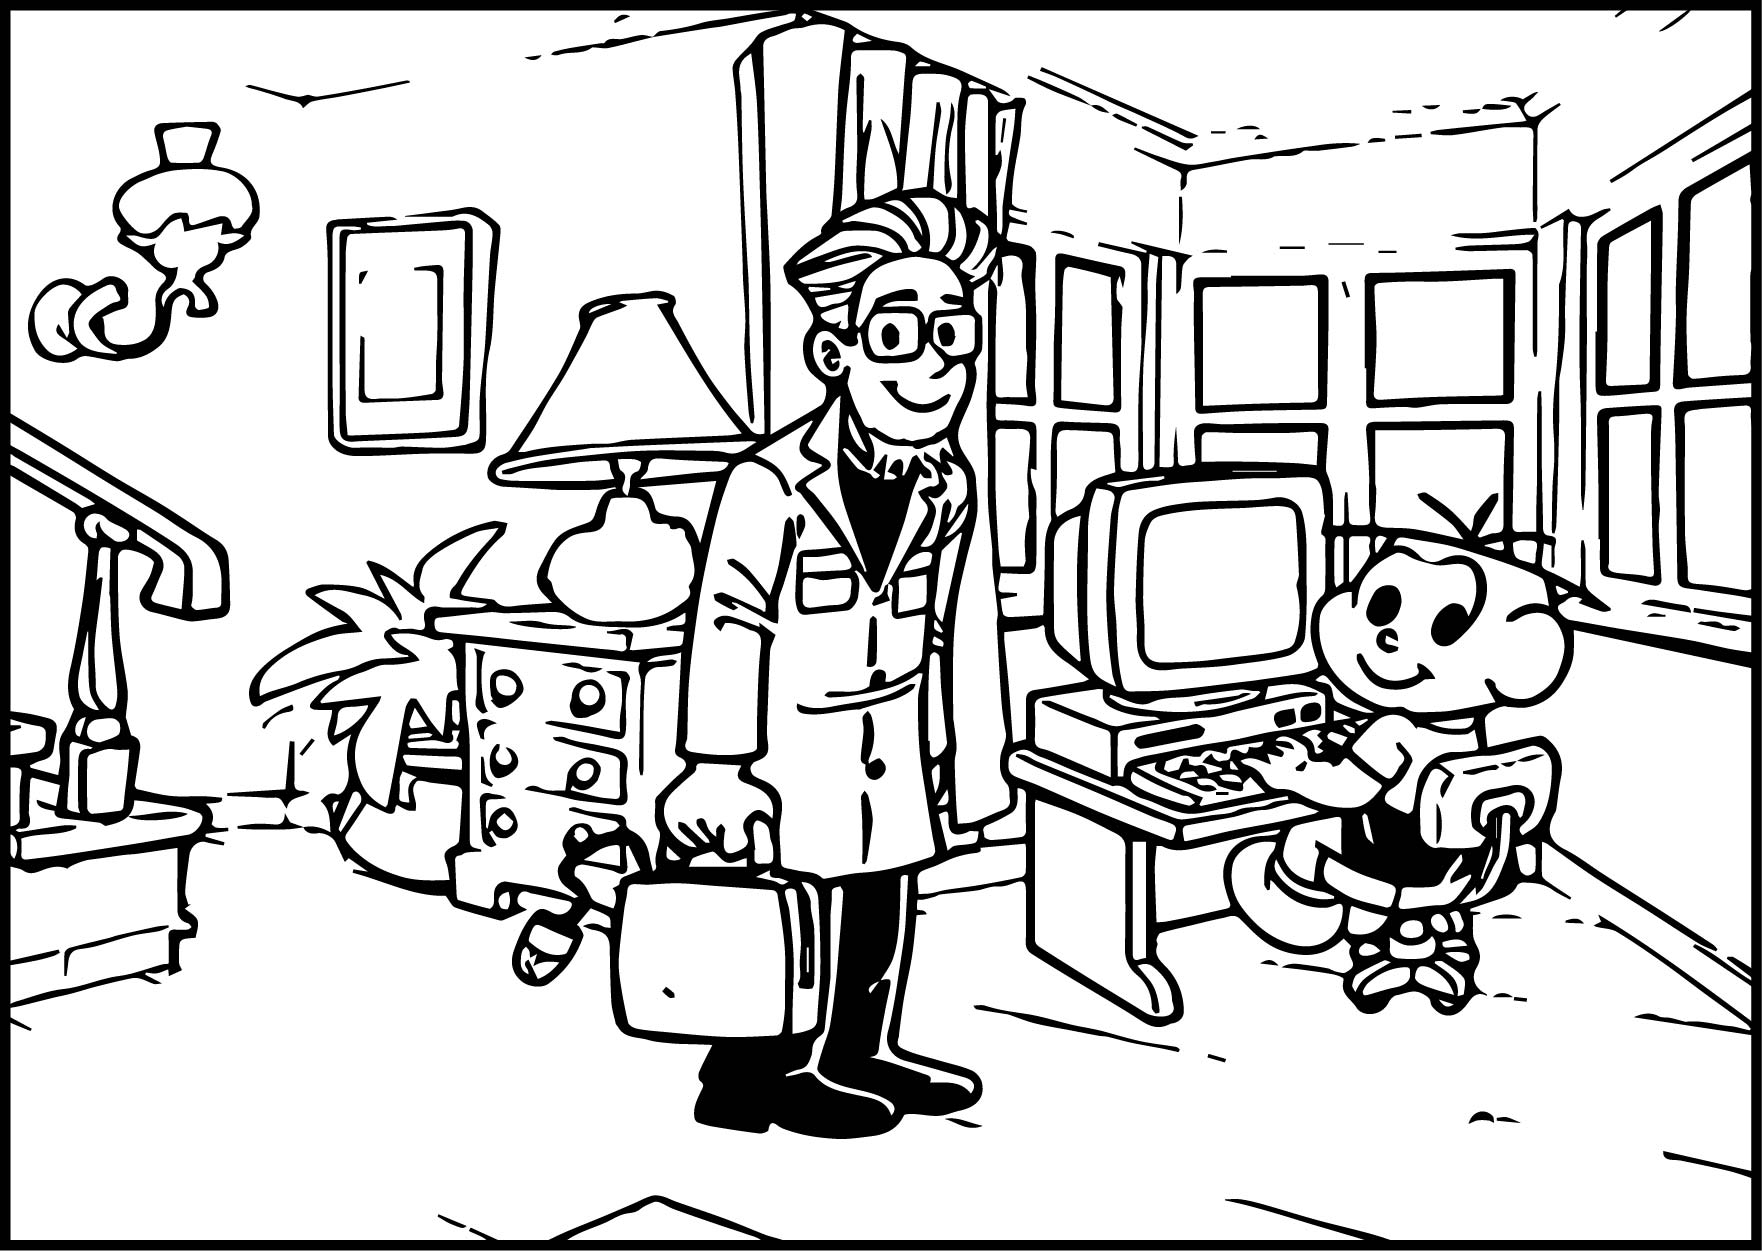 Professor And Oscar Boy Coloring Page